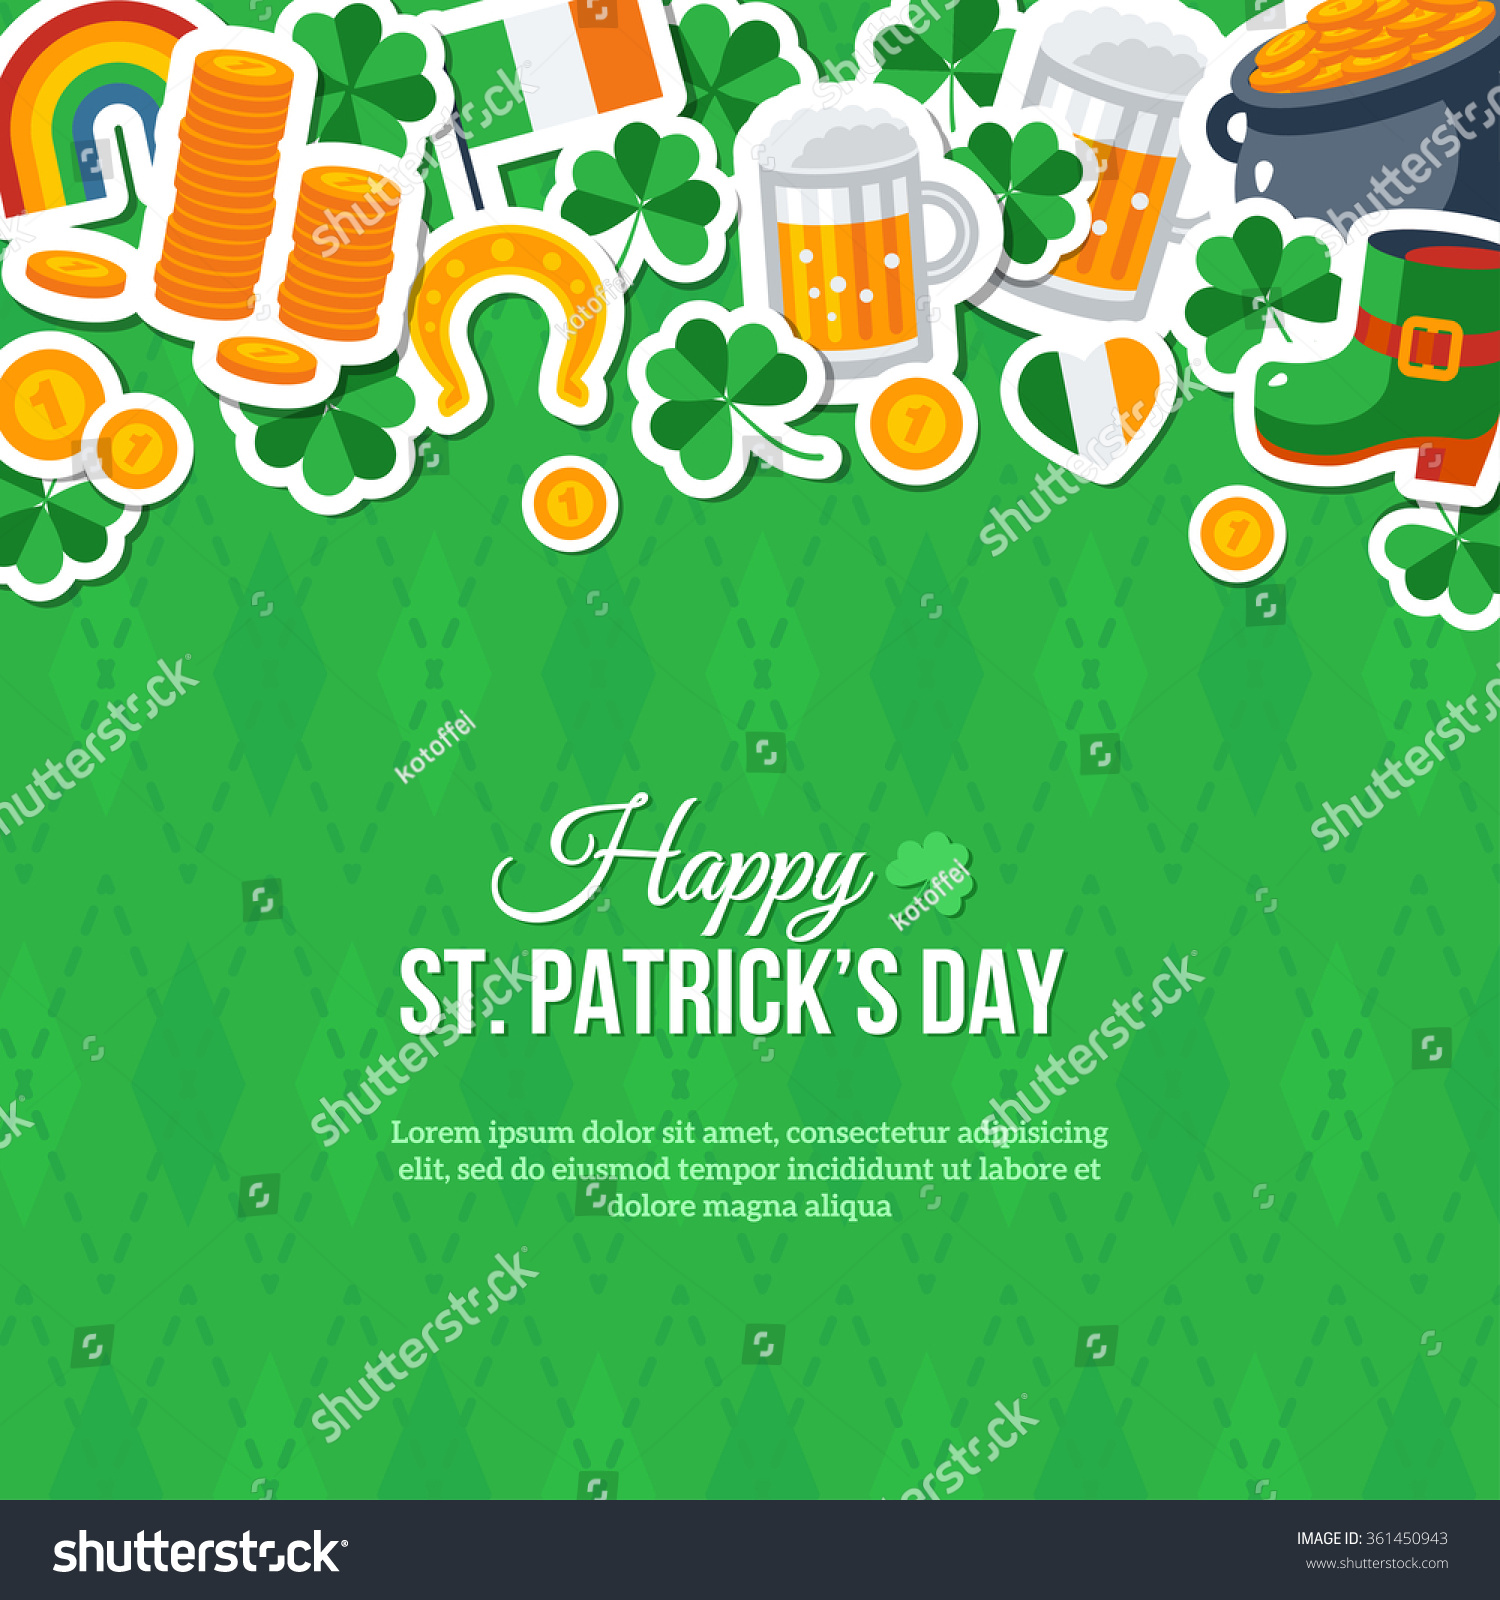 Happy St Patricks Day Greeting Card Stock Photo (Photo, Vector ...